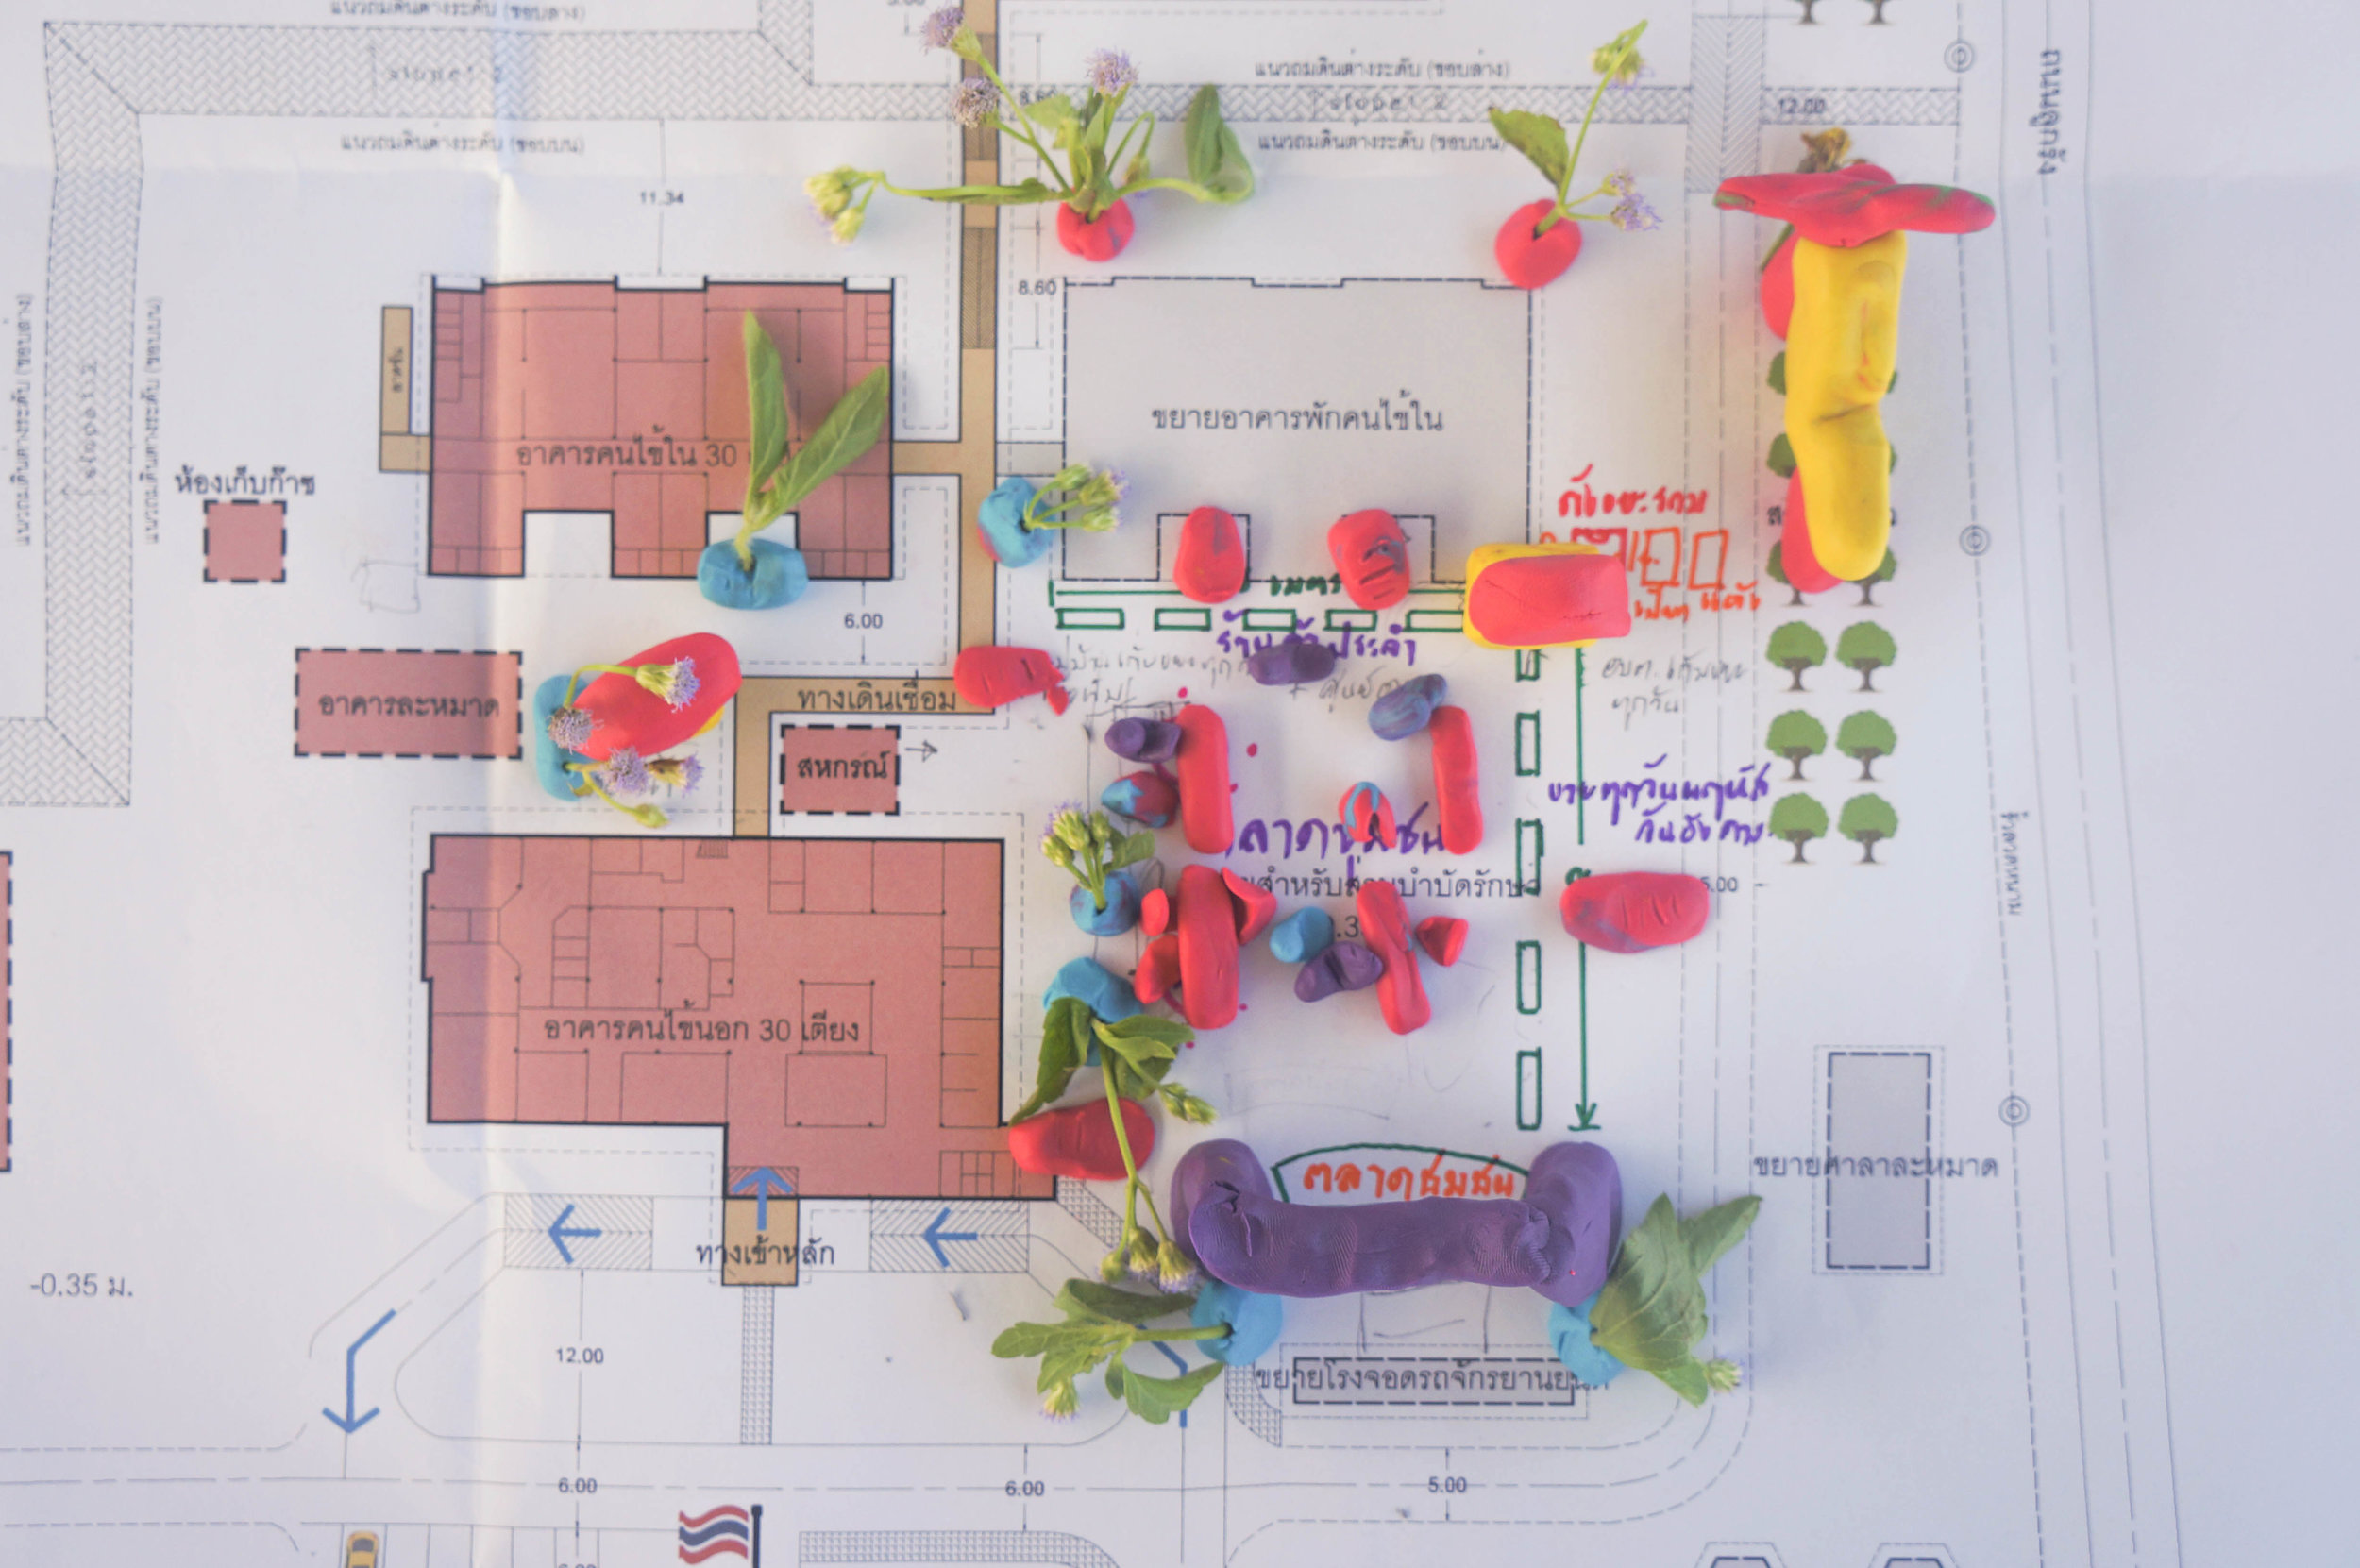 King's Hospitals project: Using a participatory process to renovate the Yi-ngo community hospital with Universal Design in Thailand